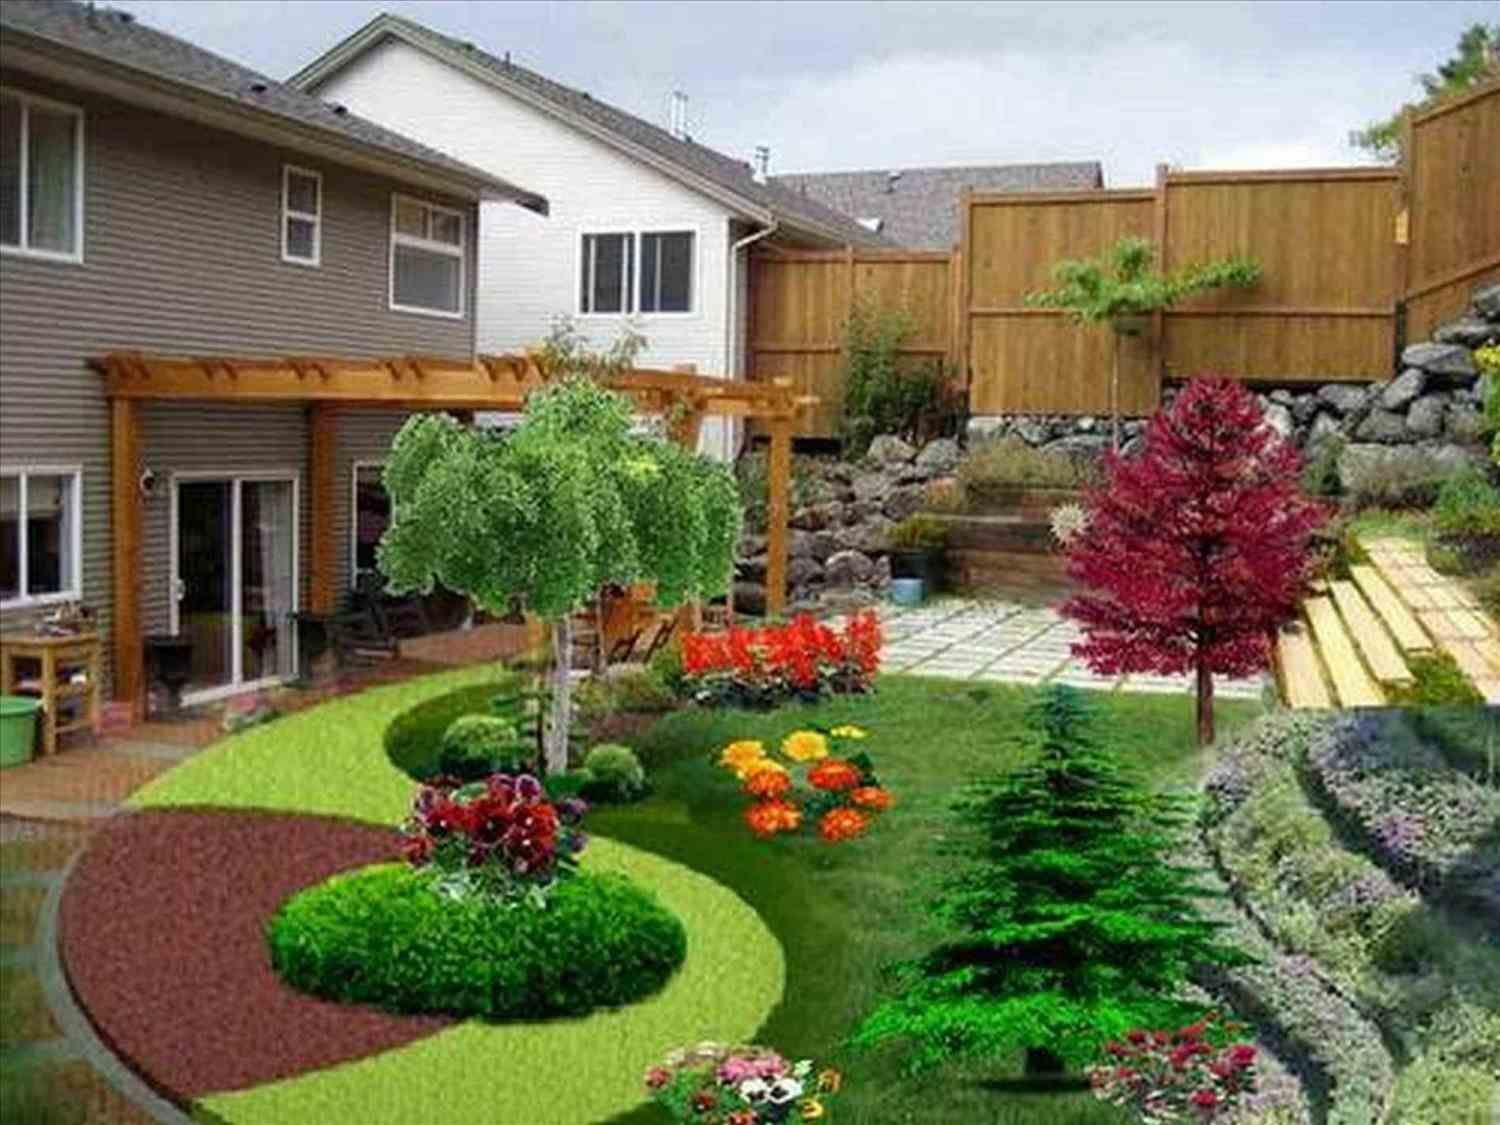 Garden Ideas Driveway Landscape Ideas Front Yard Landscaping With Design And Deco Backyard Garden Design Front Yard Landscaping Design Outdoor Landscape Design